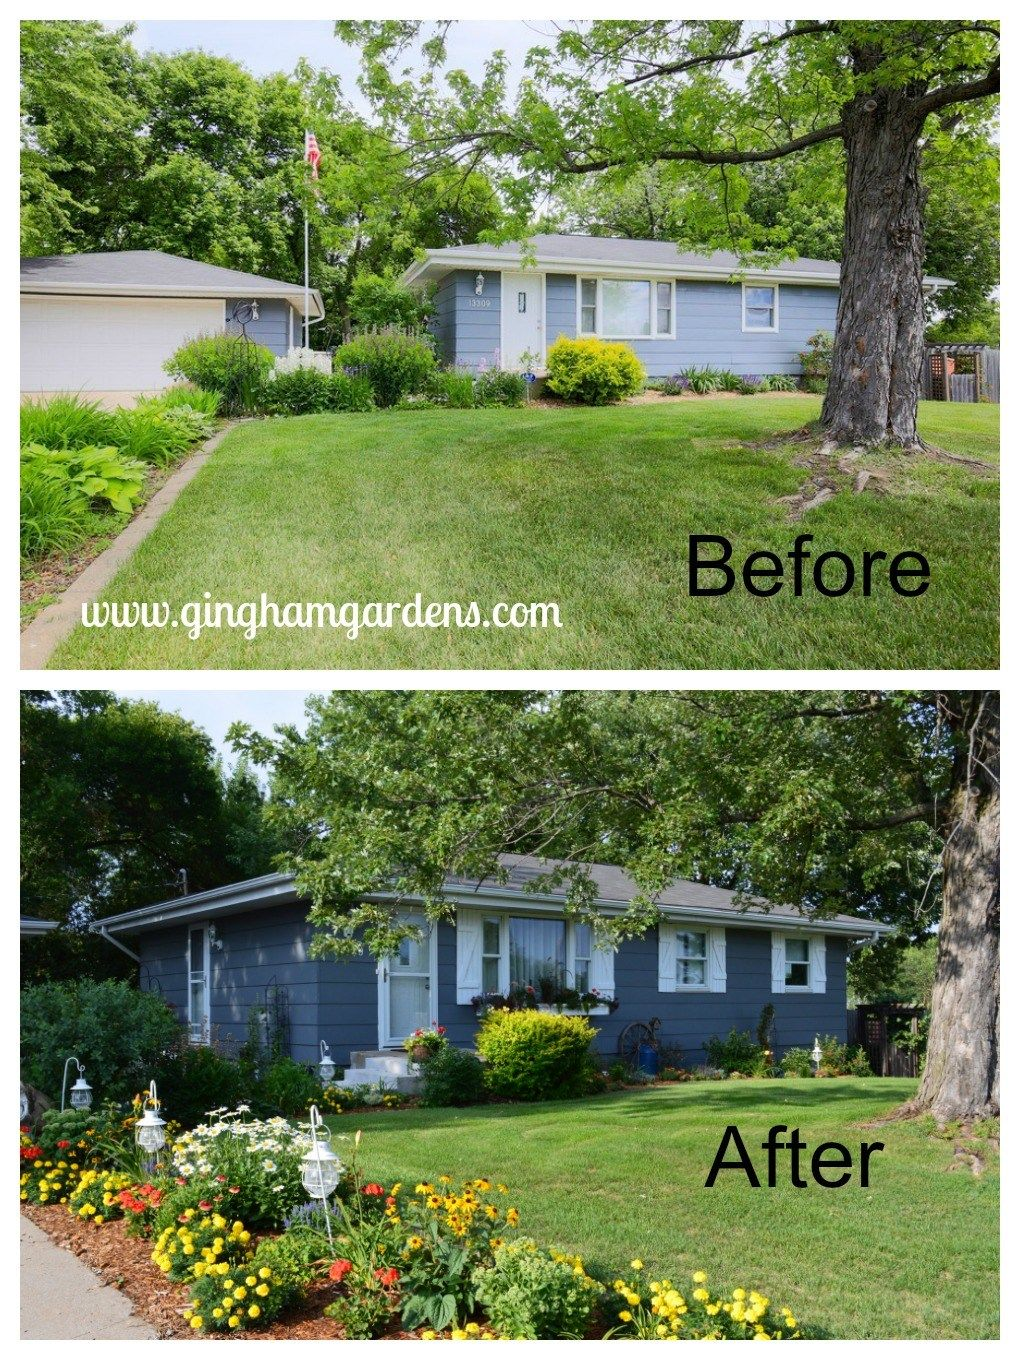 7c338dd1fdfa14897af0b761c9ae2f93 - Before And After Pictures Of Gardens